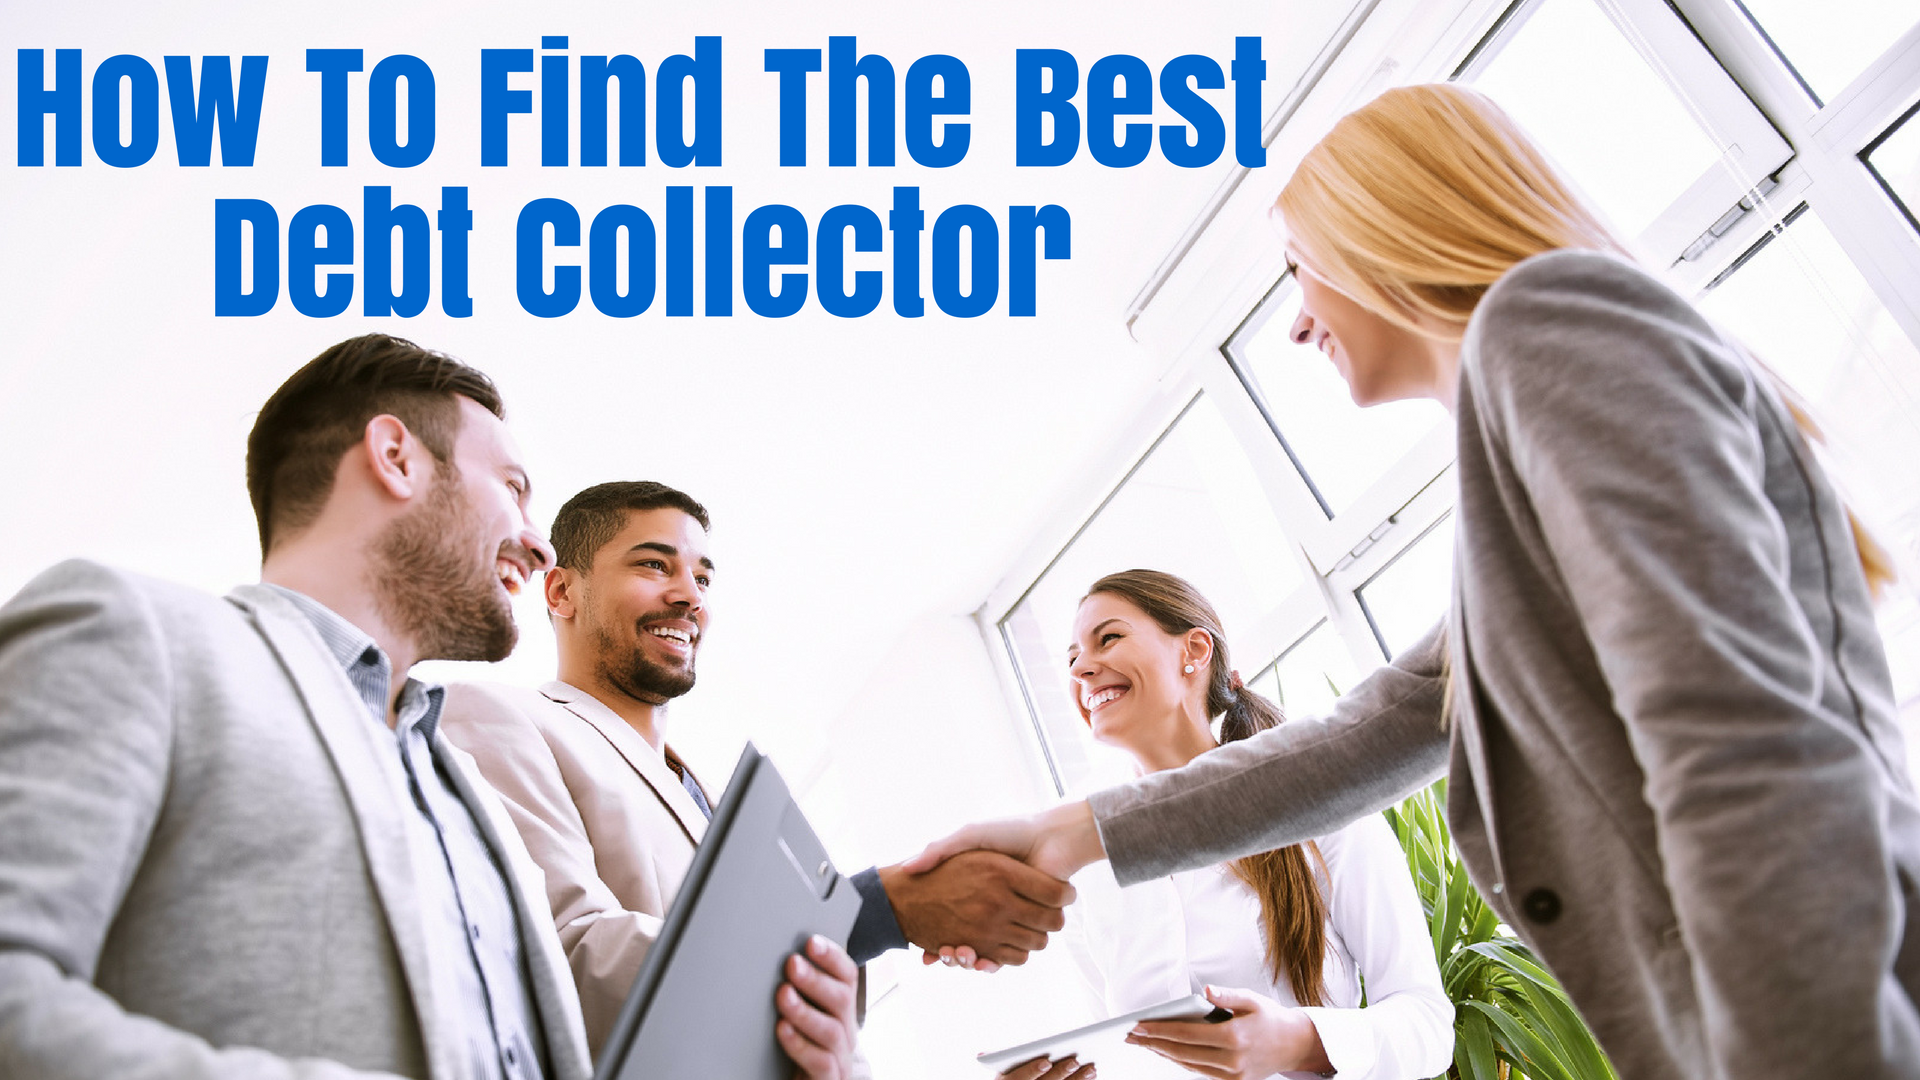 How To Find The Best Debt Collectors